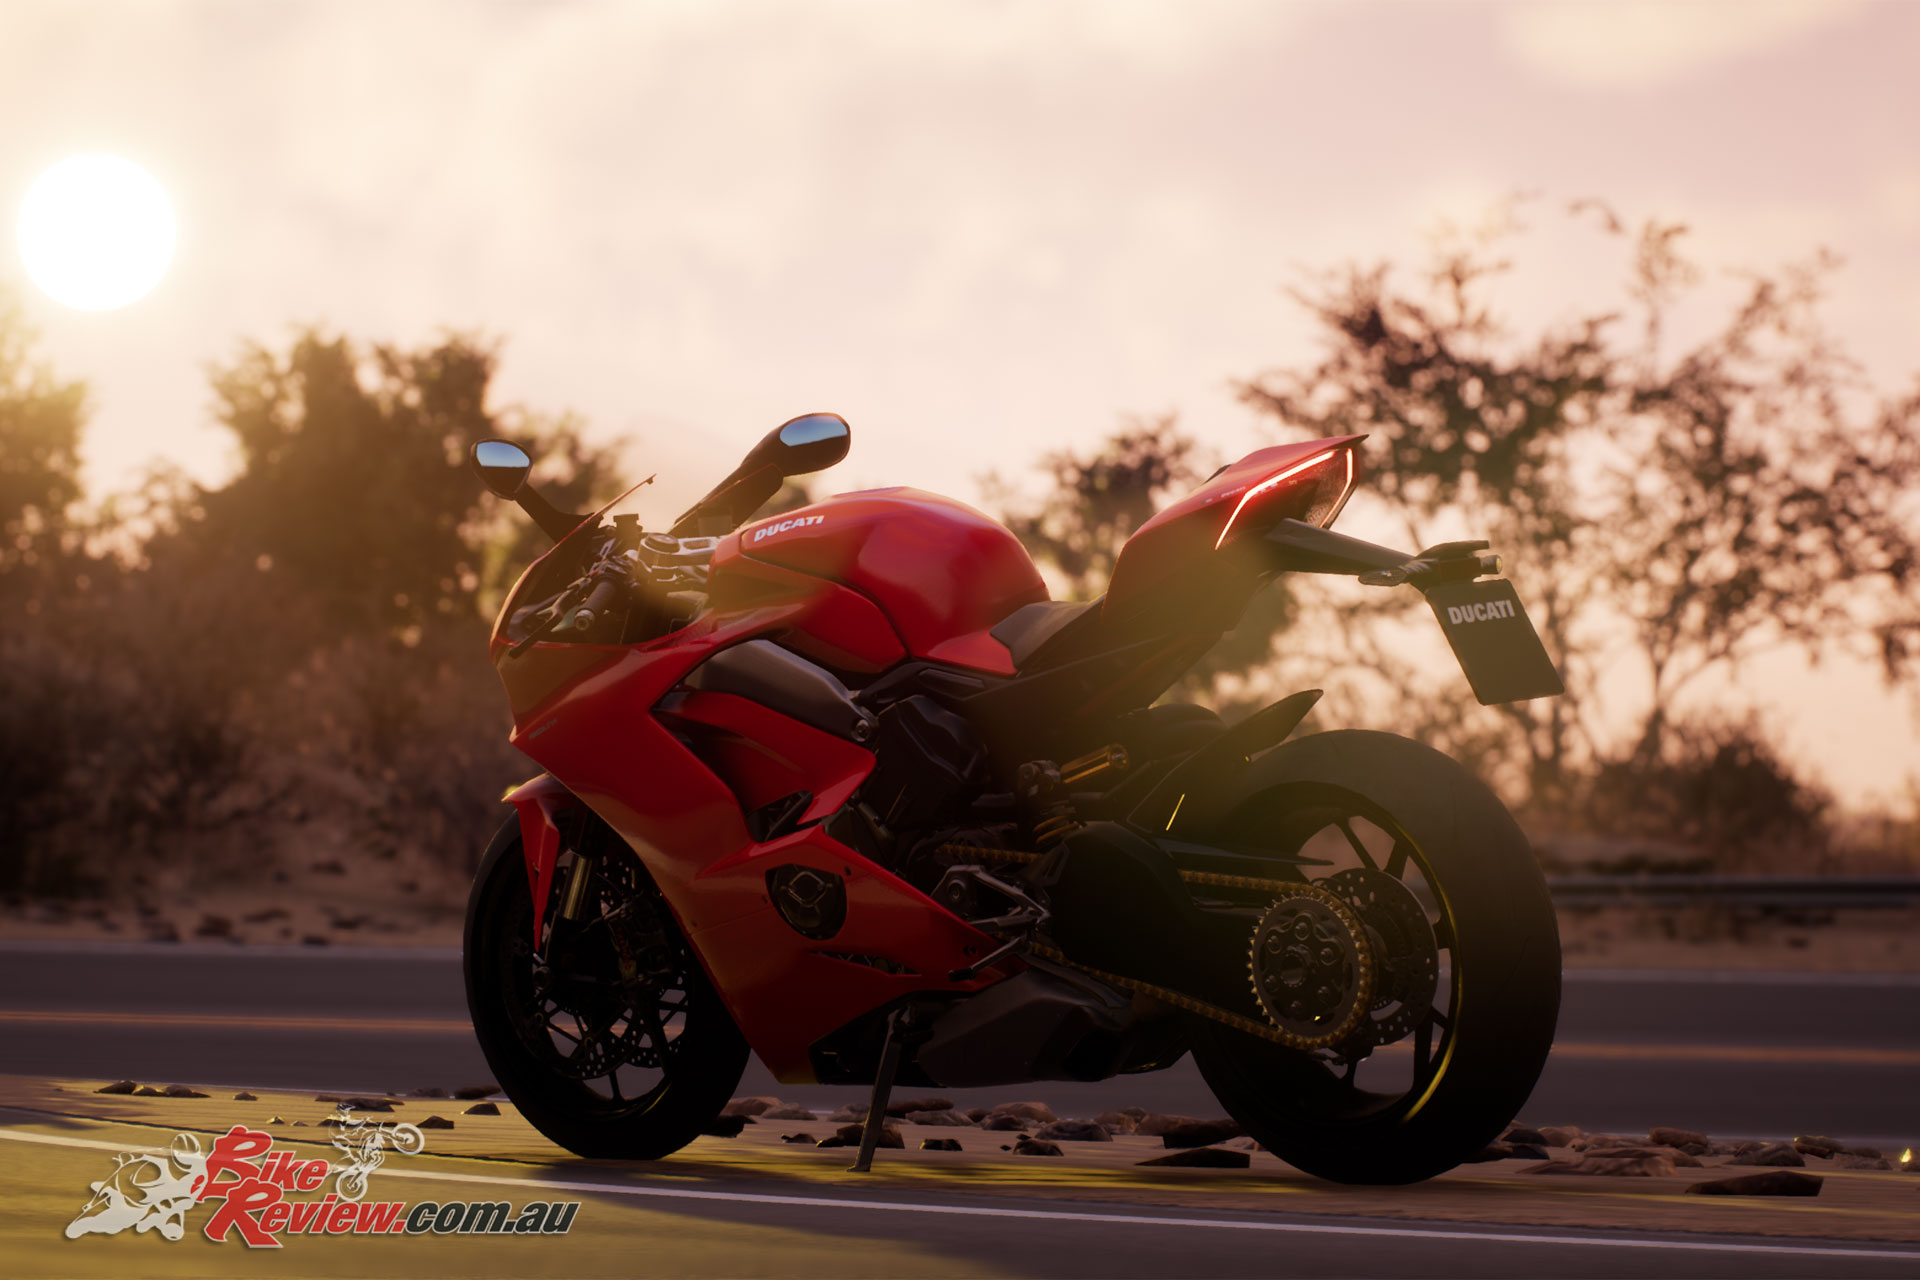 Ducati's Panigale V4, pictured in the game. Check out those graphics!